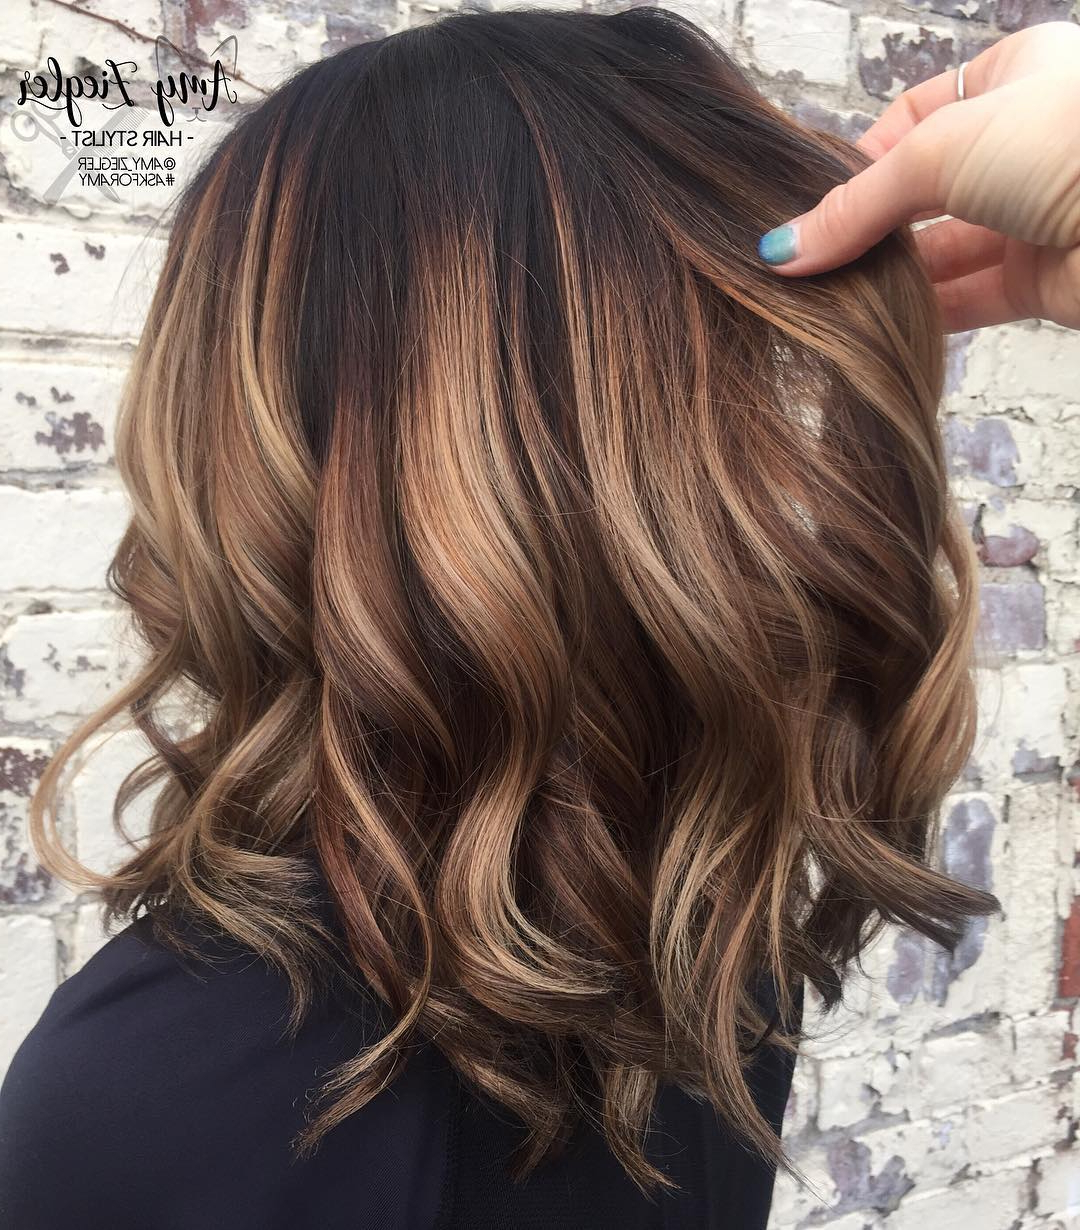 Most Current Long Thick Black Hairstyles With Light Brown Balayage Pertaining To 10 Trendy Brown Balayage Hairstyles For Medium Length Hair (View 11 of 20)